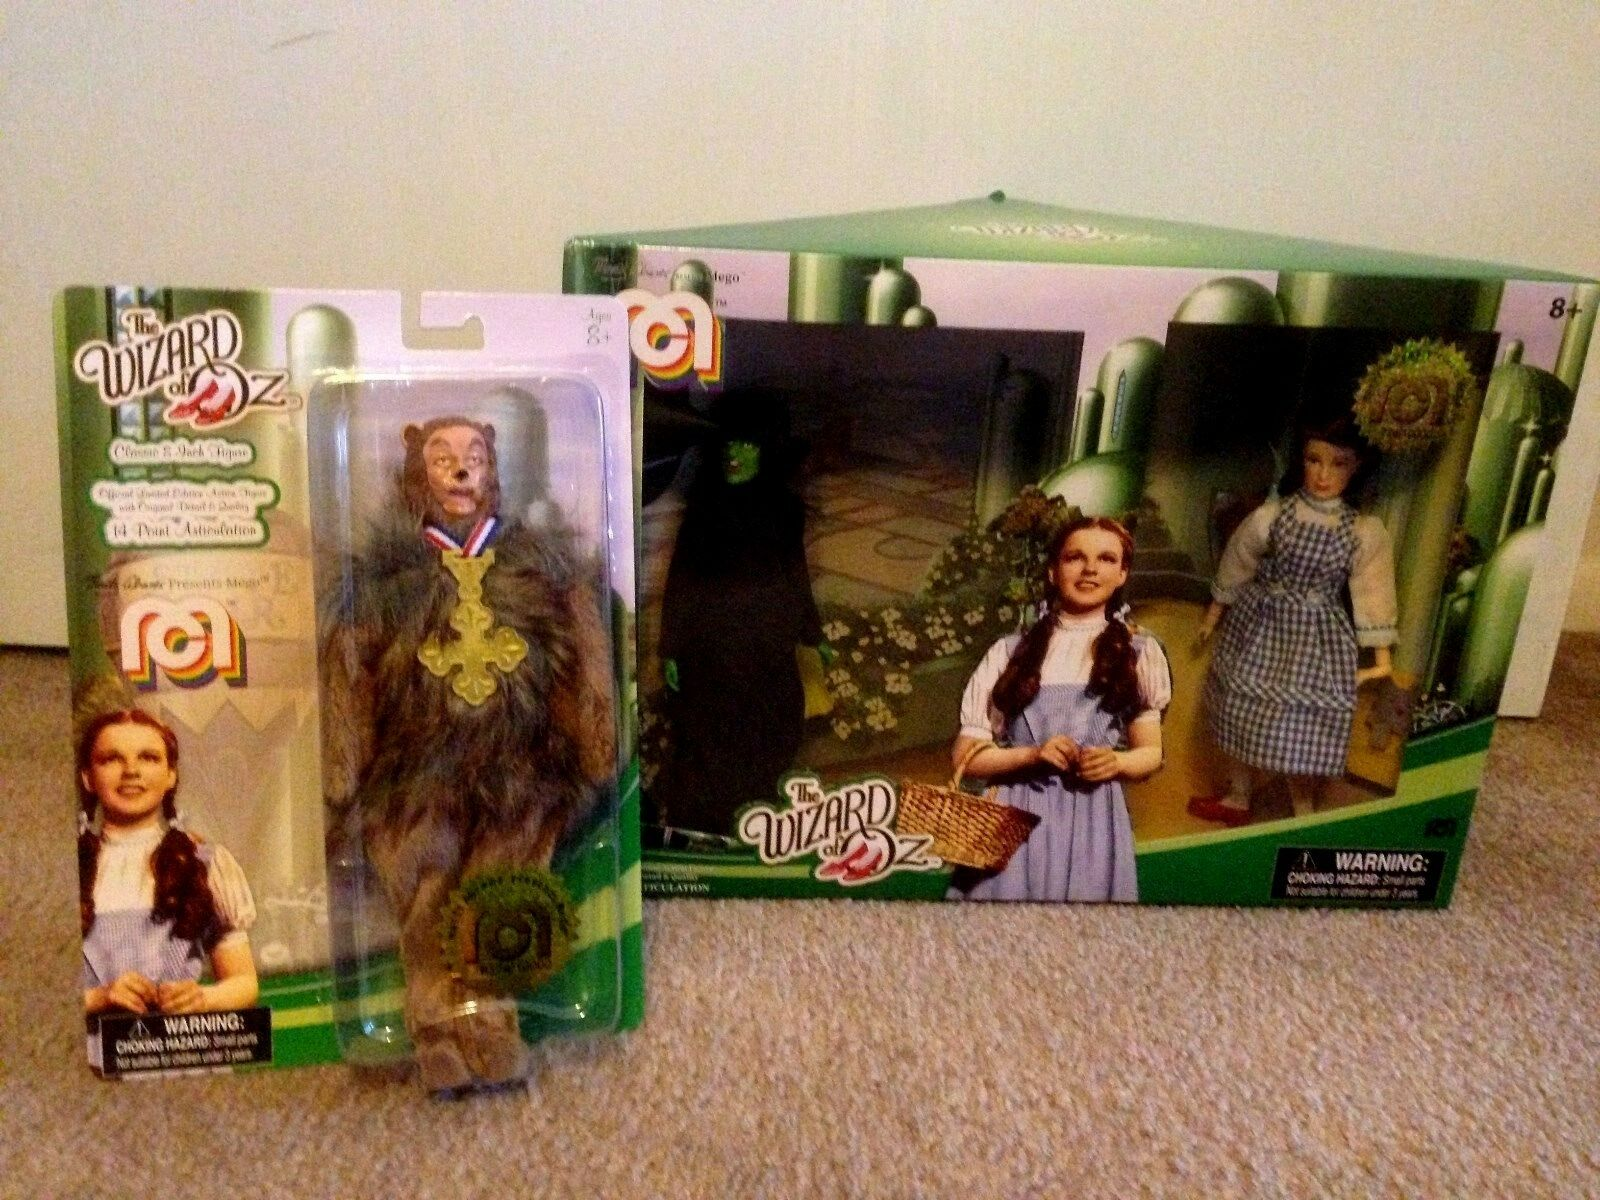 Mego Wizard of Oz Target Exclusives  10,000  Plus Cowardly Lion